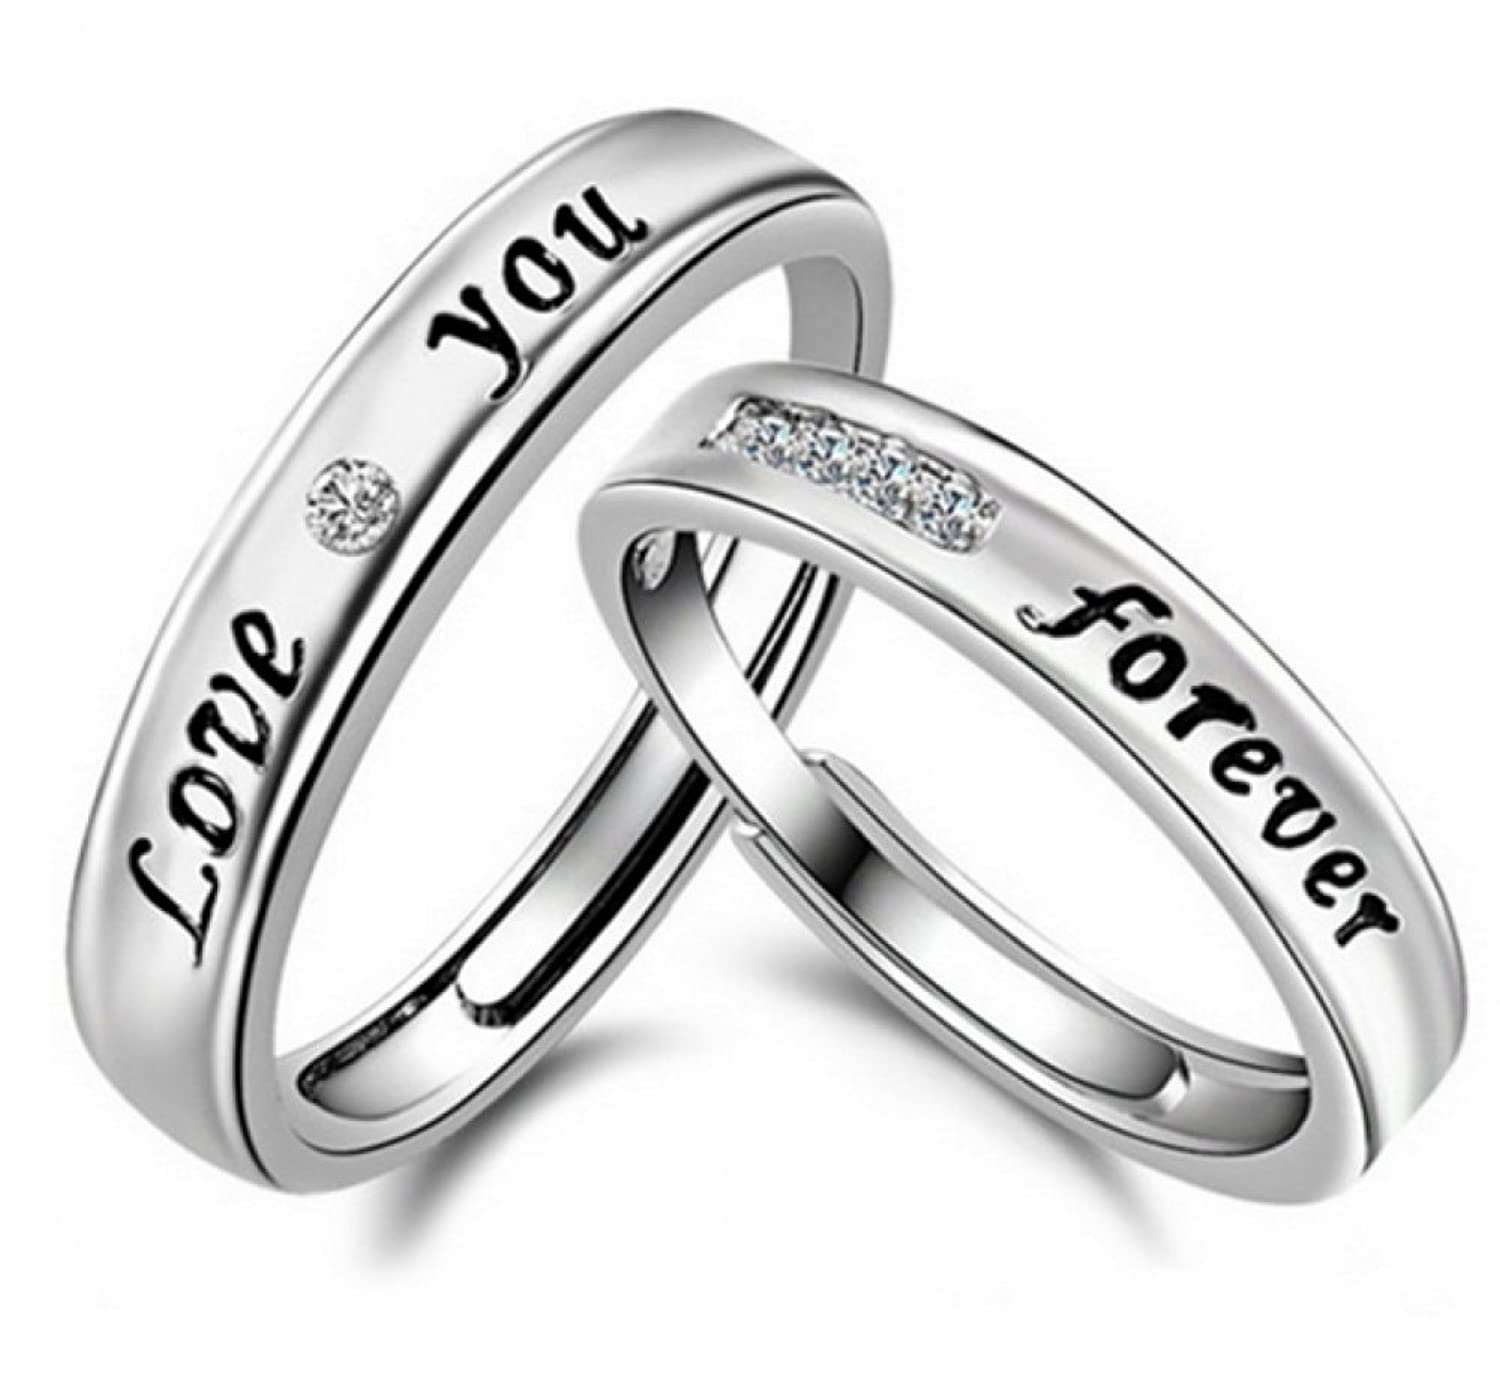 bow item series timeless love rings gifts bands from silver wedding best in wind endless friends s jewelry women fashionable